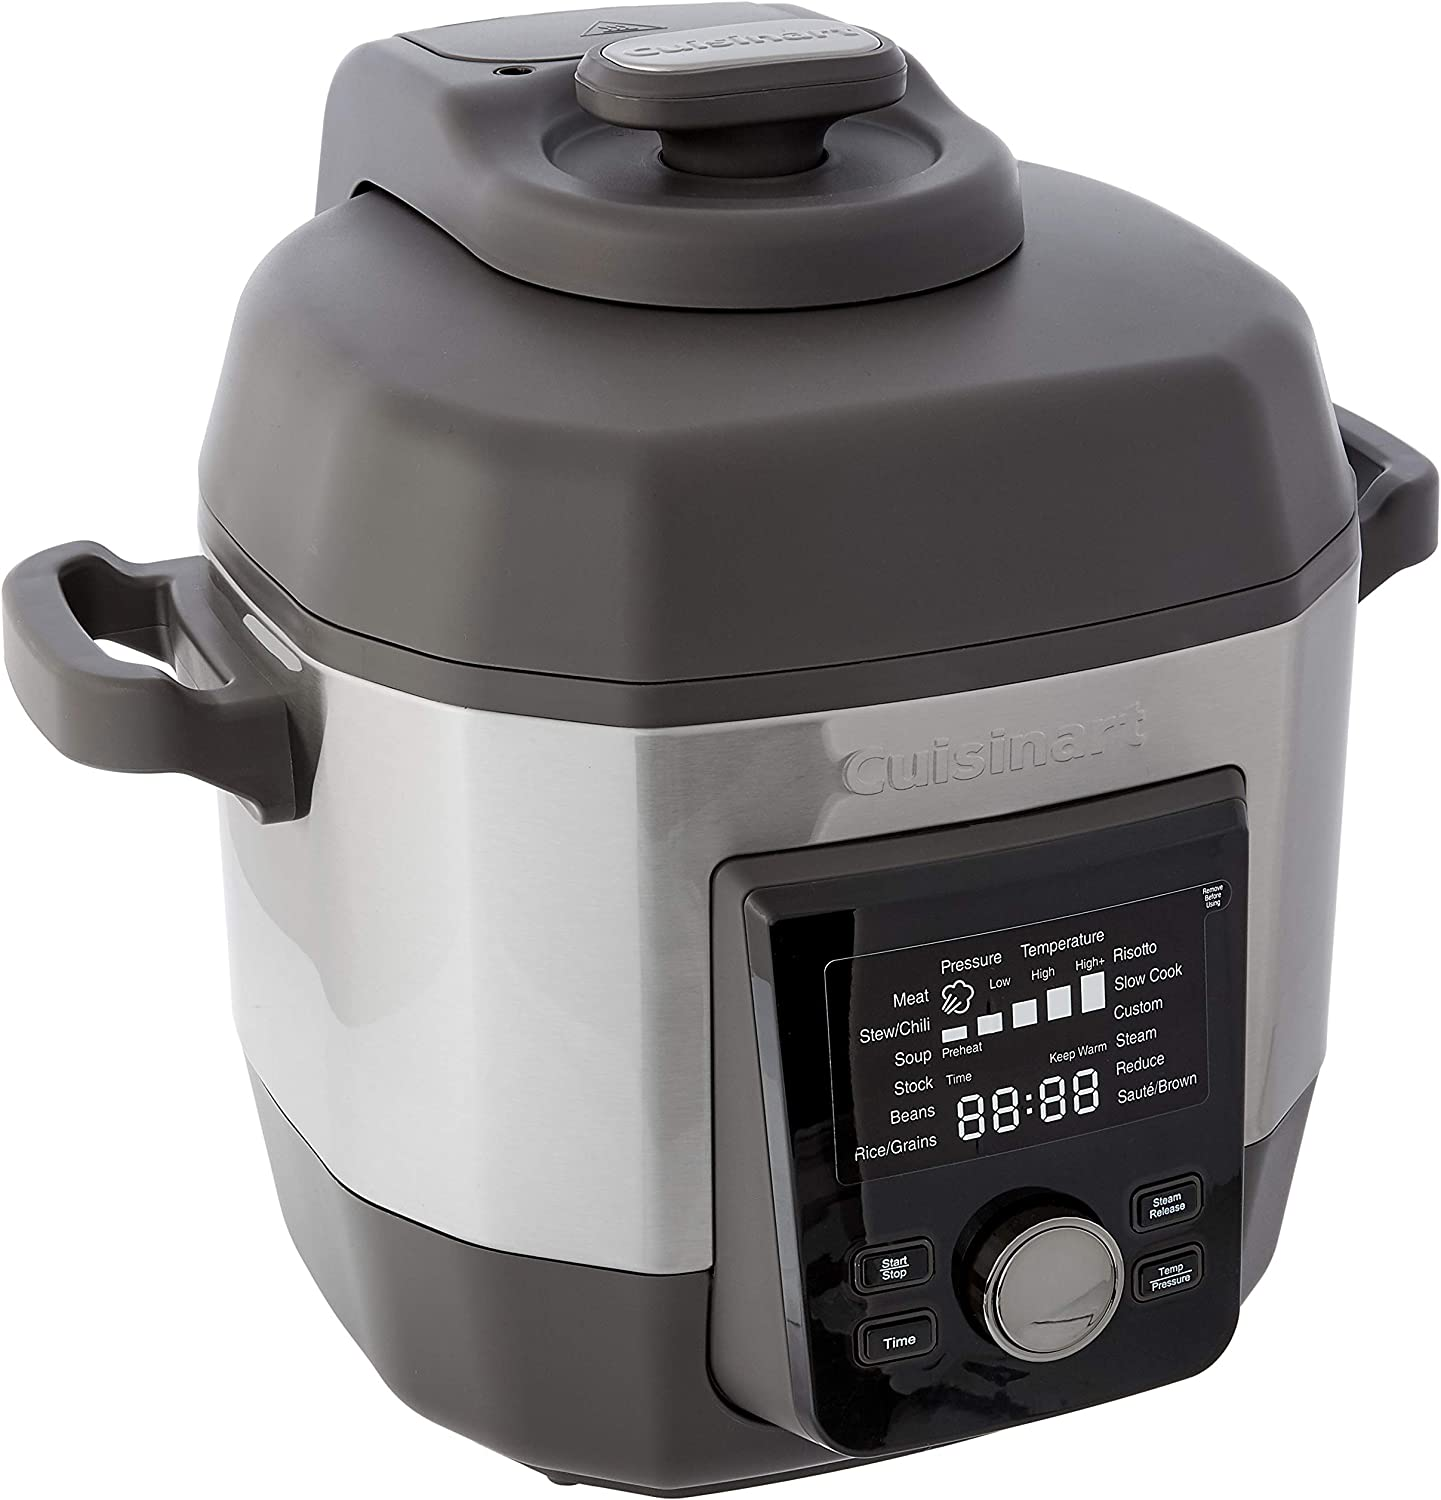 Cuisinart CPC-900 6-Quart High Multicooker Pressure Cooker